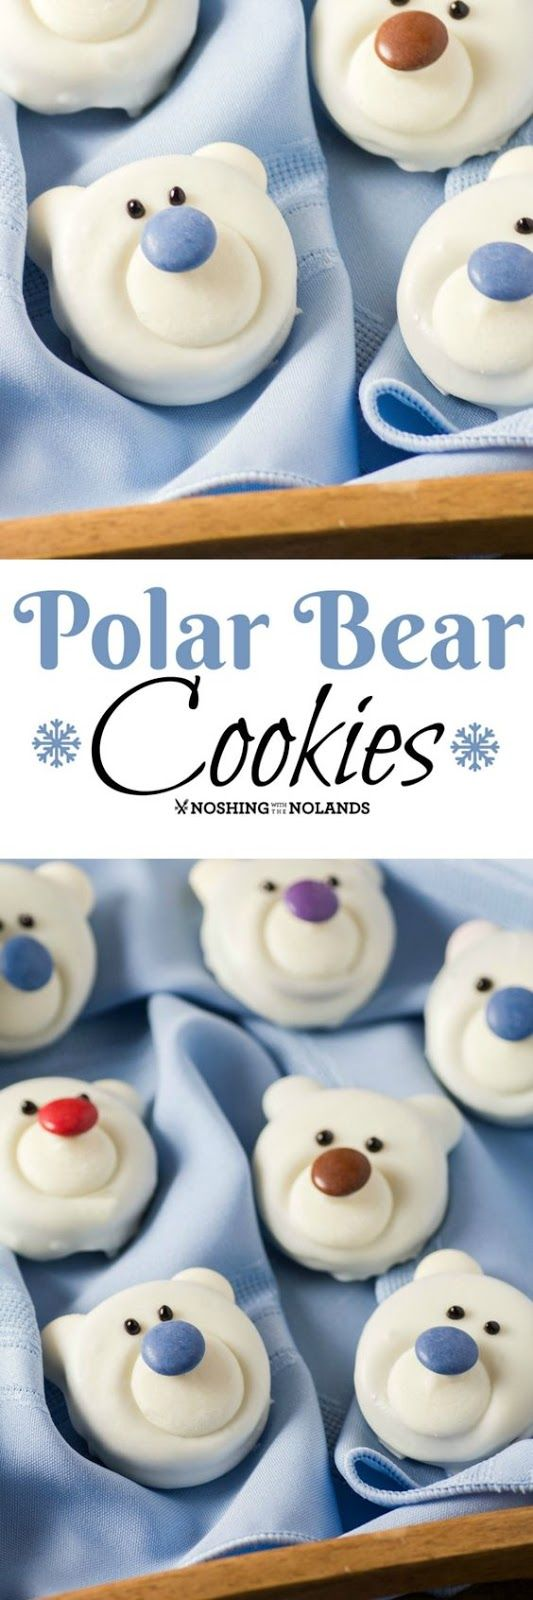 Polar Bear Cookies are a fun, no-bake treat that the kids will enjoy making with you. A delightful addition to your holiday cookie tray! Th...